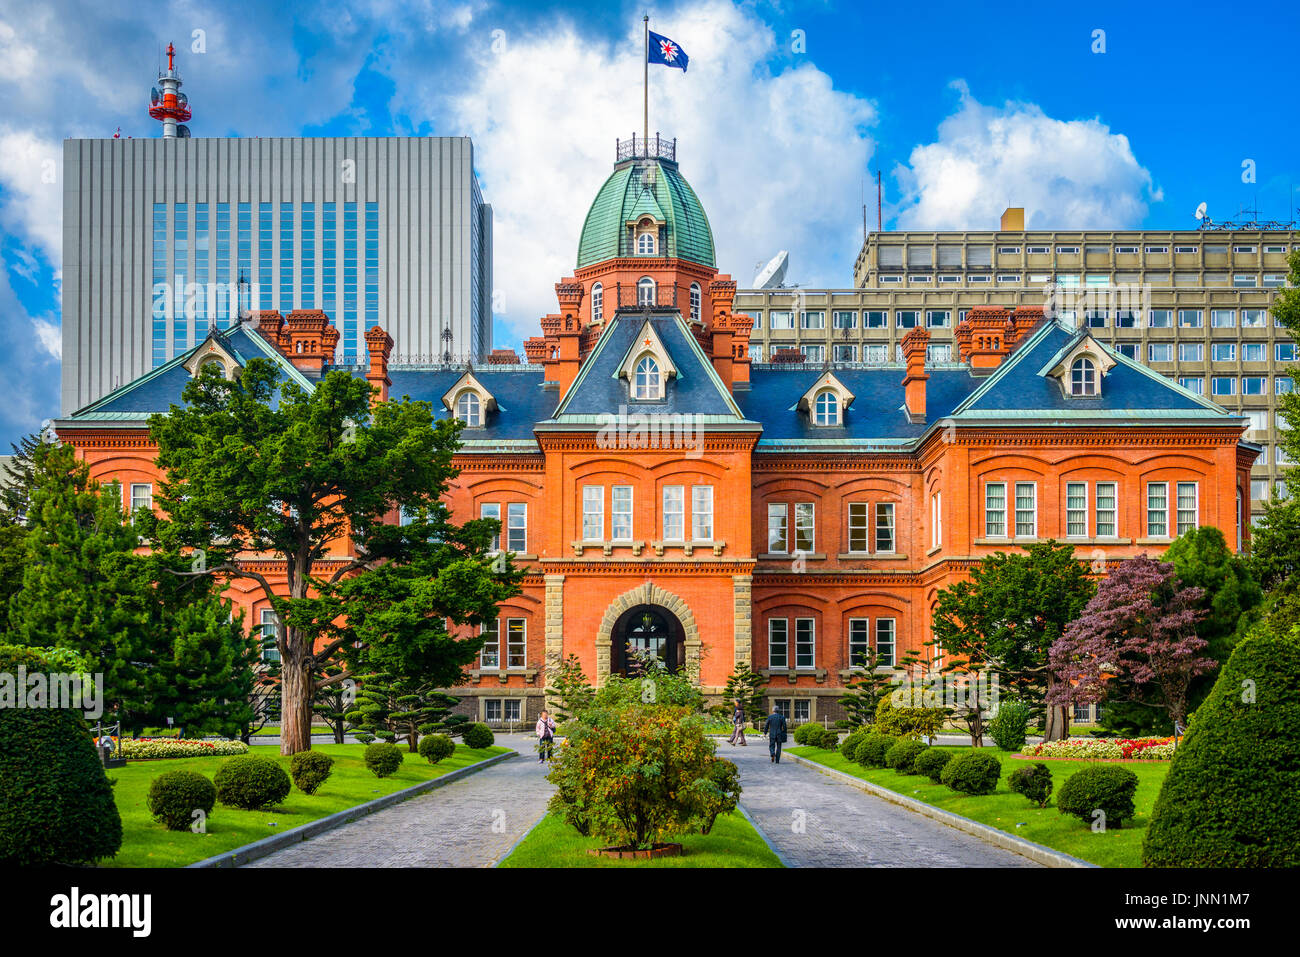 Sapporo, Japan at the historic Former Hokkaido Government Offices. - Stock Image